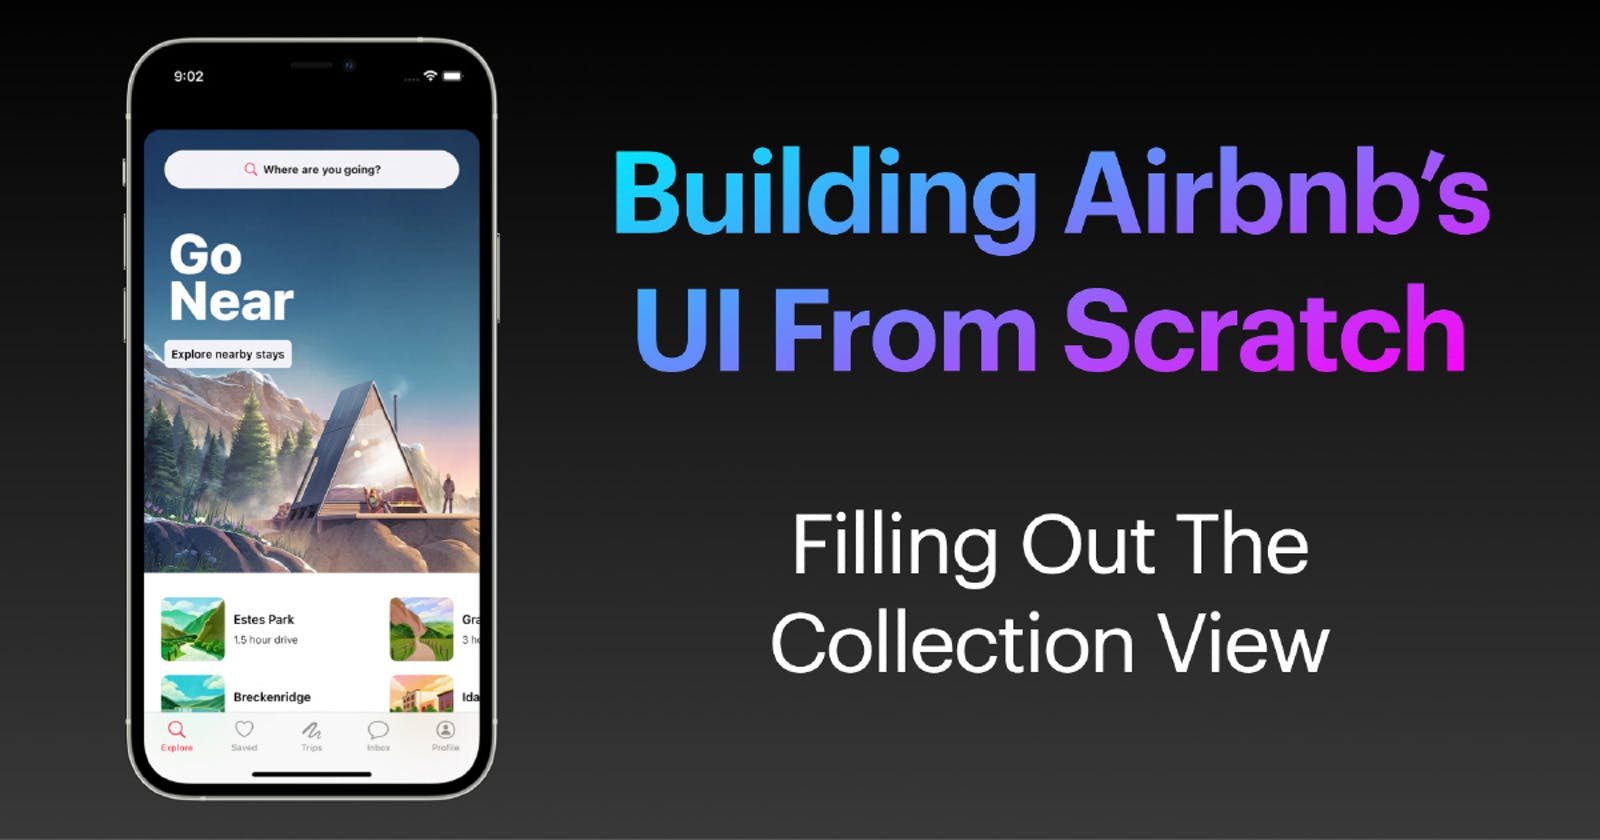 Building Airbnb's UI From Scratch - Part 3